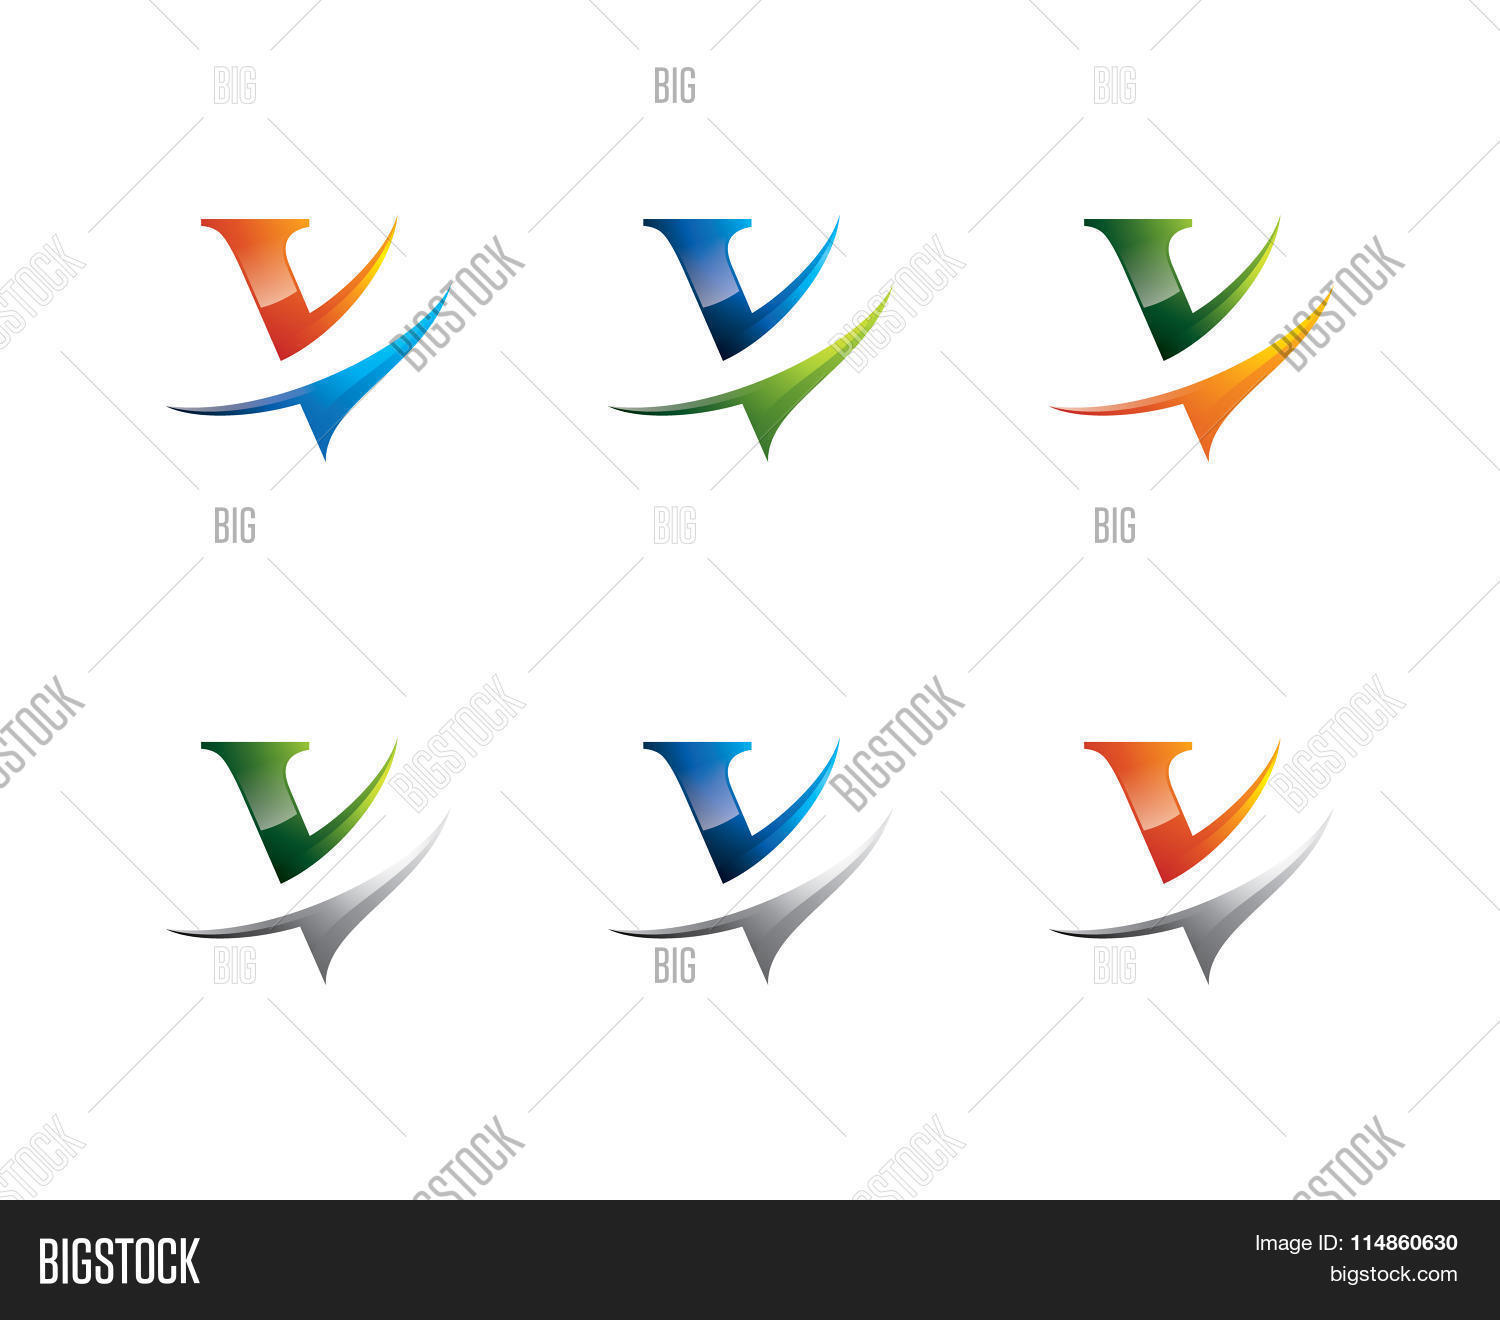 colorful v letter logo v logo design template element